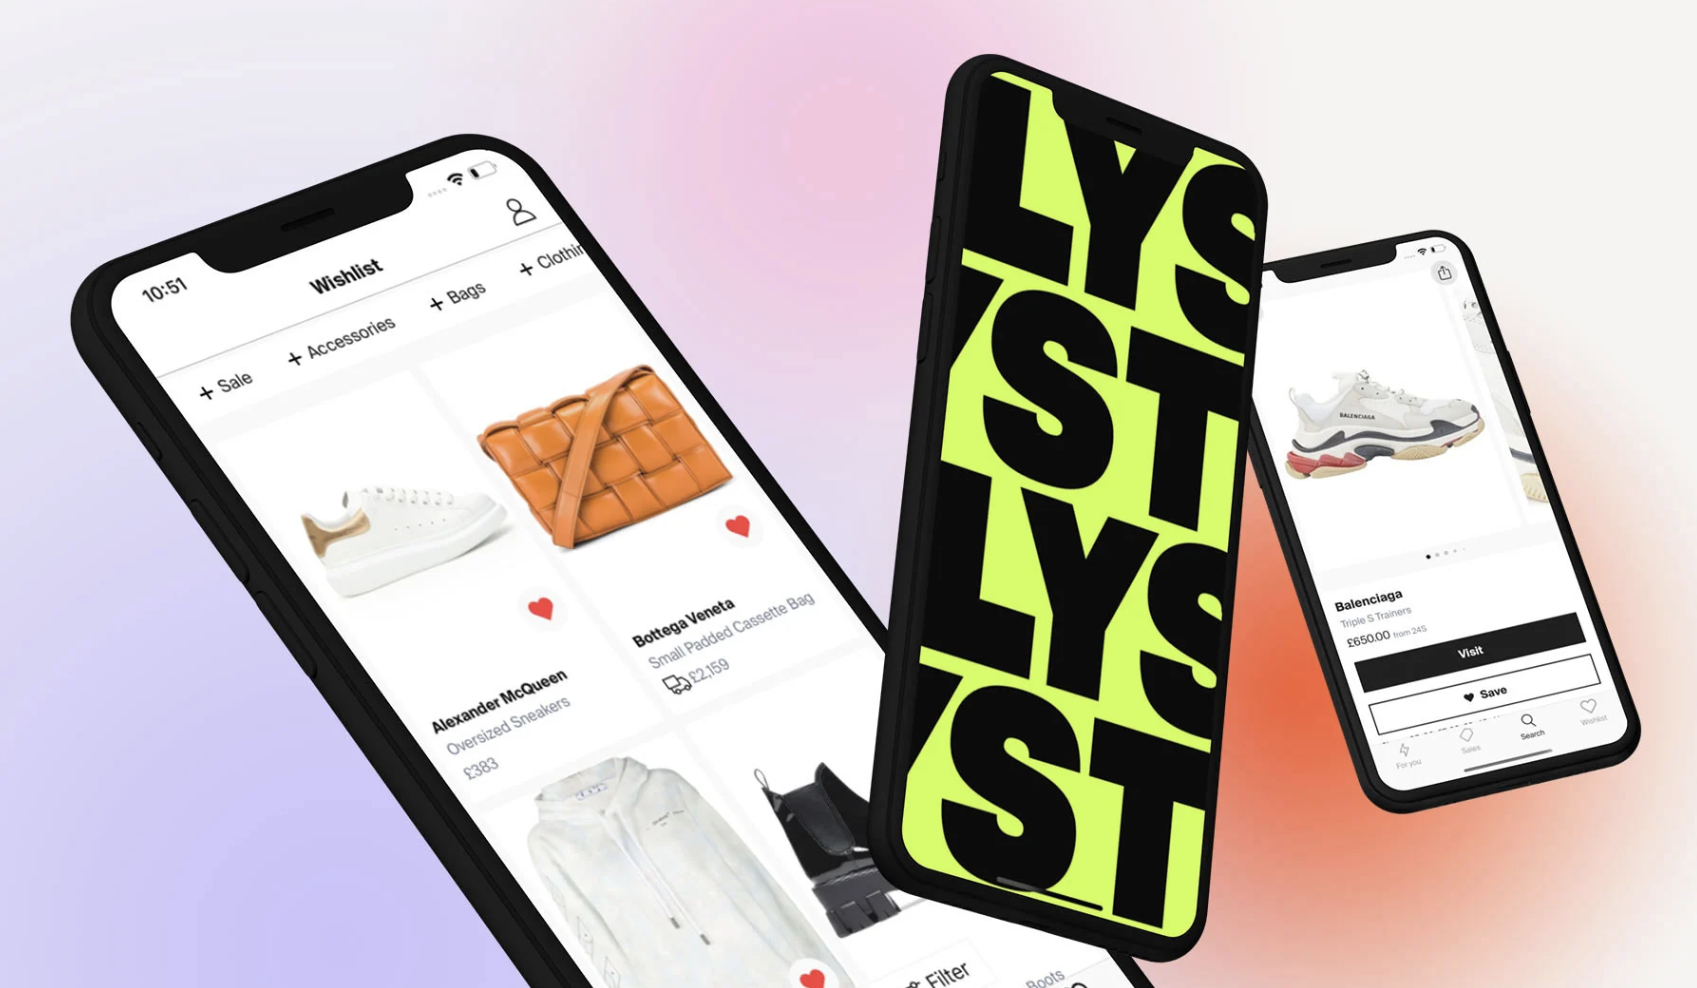 More than $400 million is powering fashion tech platforms such as Lyst, Grin, Vinted, GoShare2 and DLSTD parent Digital Brands Group.